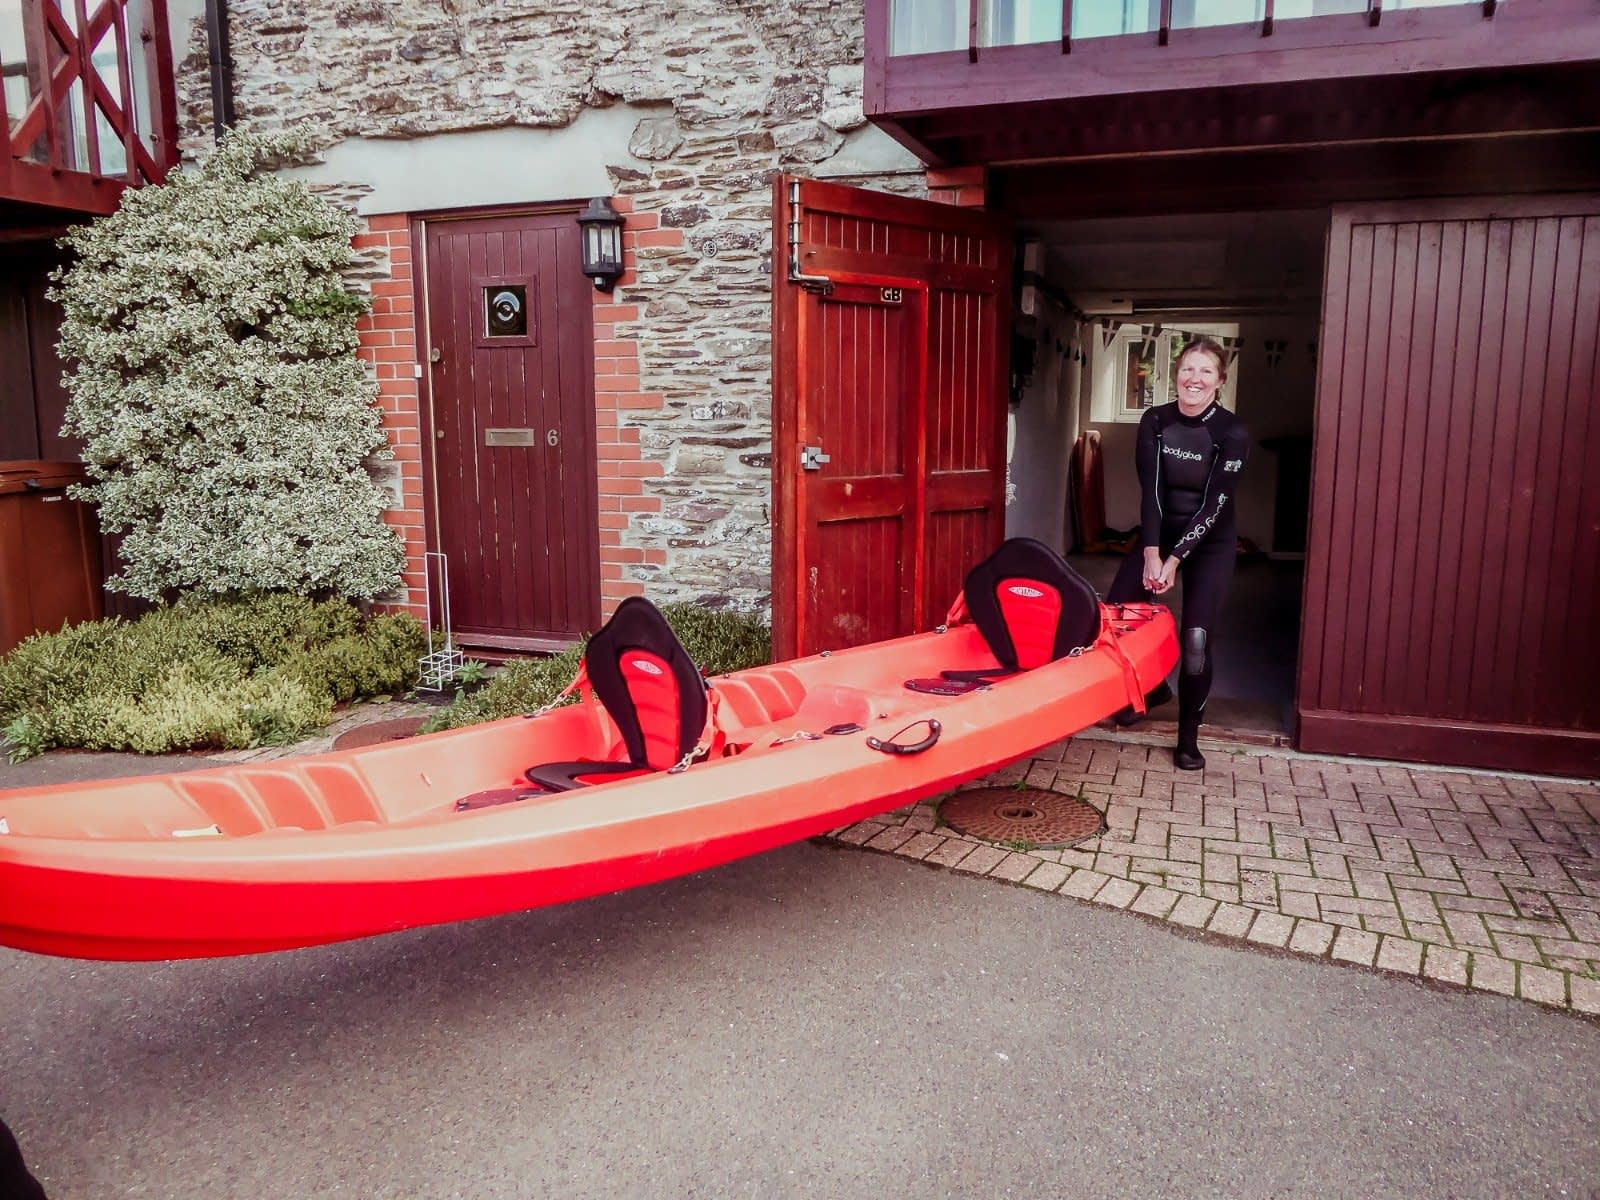 Secure Storage for Kayaks - Anchor cottage - Holiday Cottages Noss Mayo